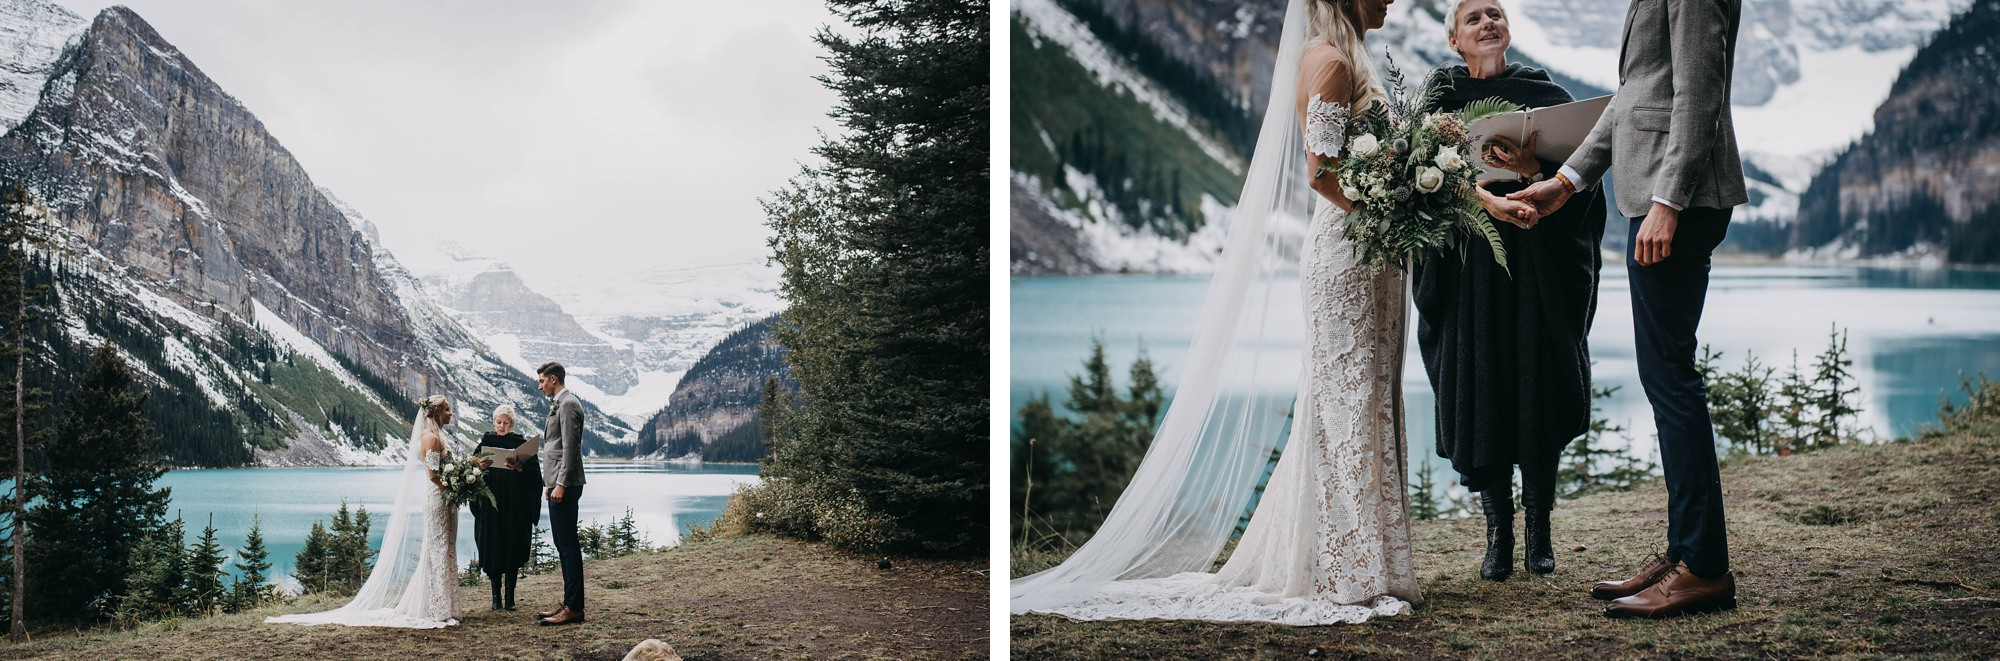 Intimate boho wedding captured at Lake Louise in the Canadian Rockies by Calgary Wedding Photographer Terry Photo Co,